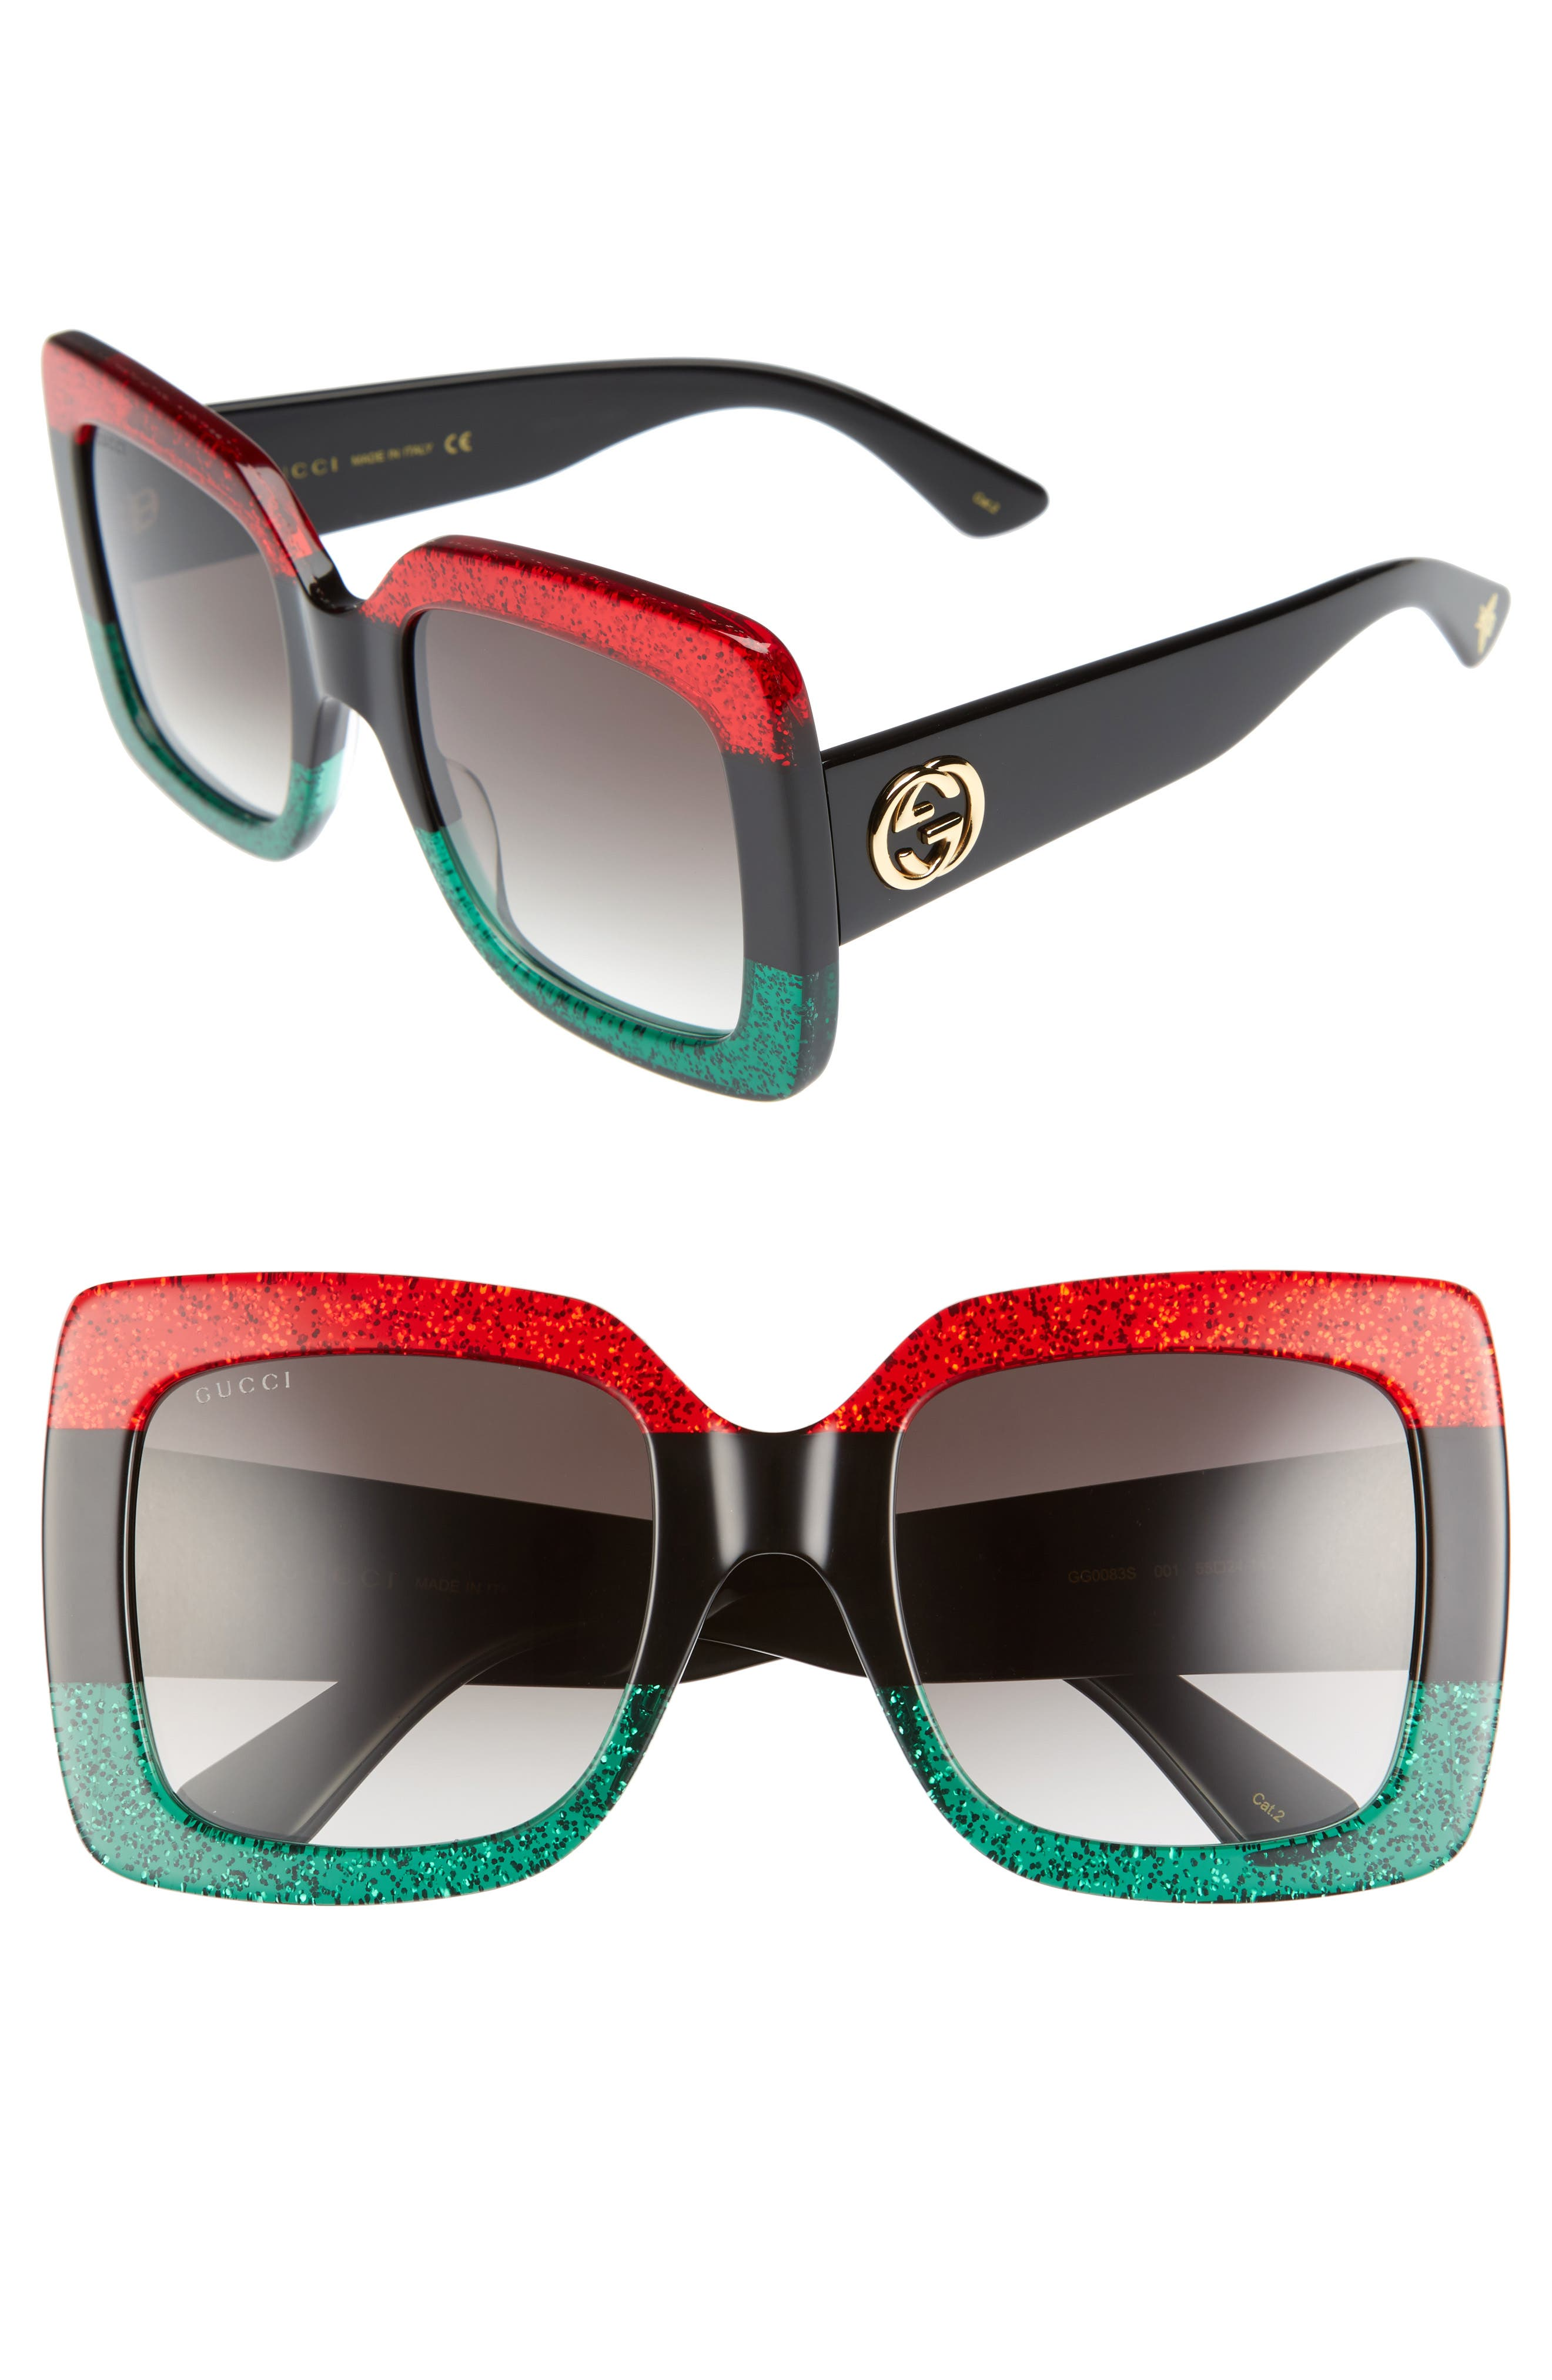 55mm Square Sunglasses, Main, color, RED BLACK GREEN/ GREY